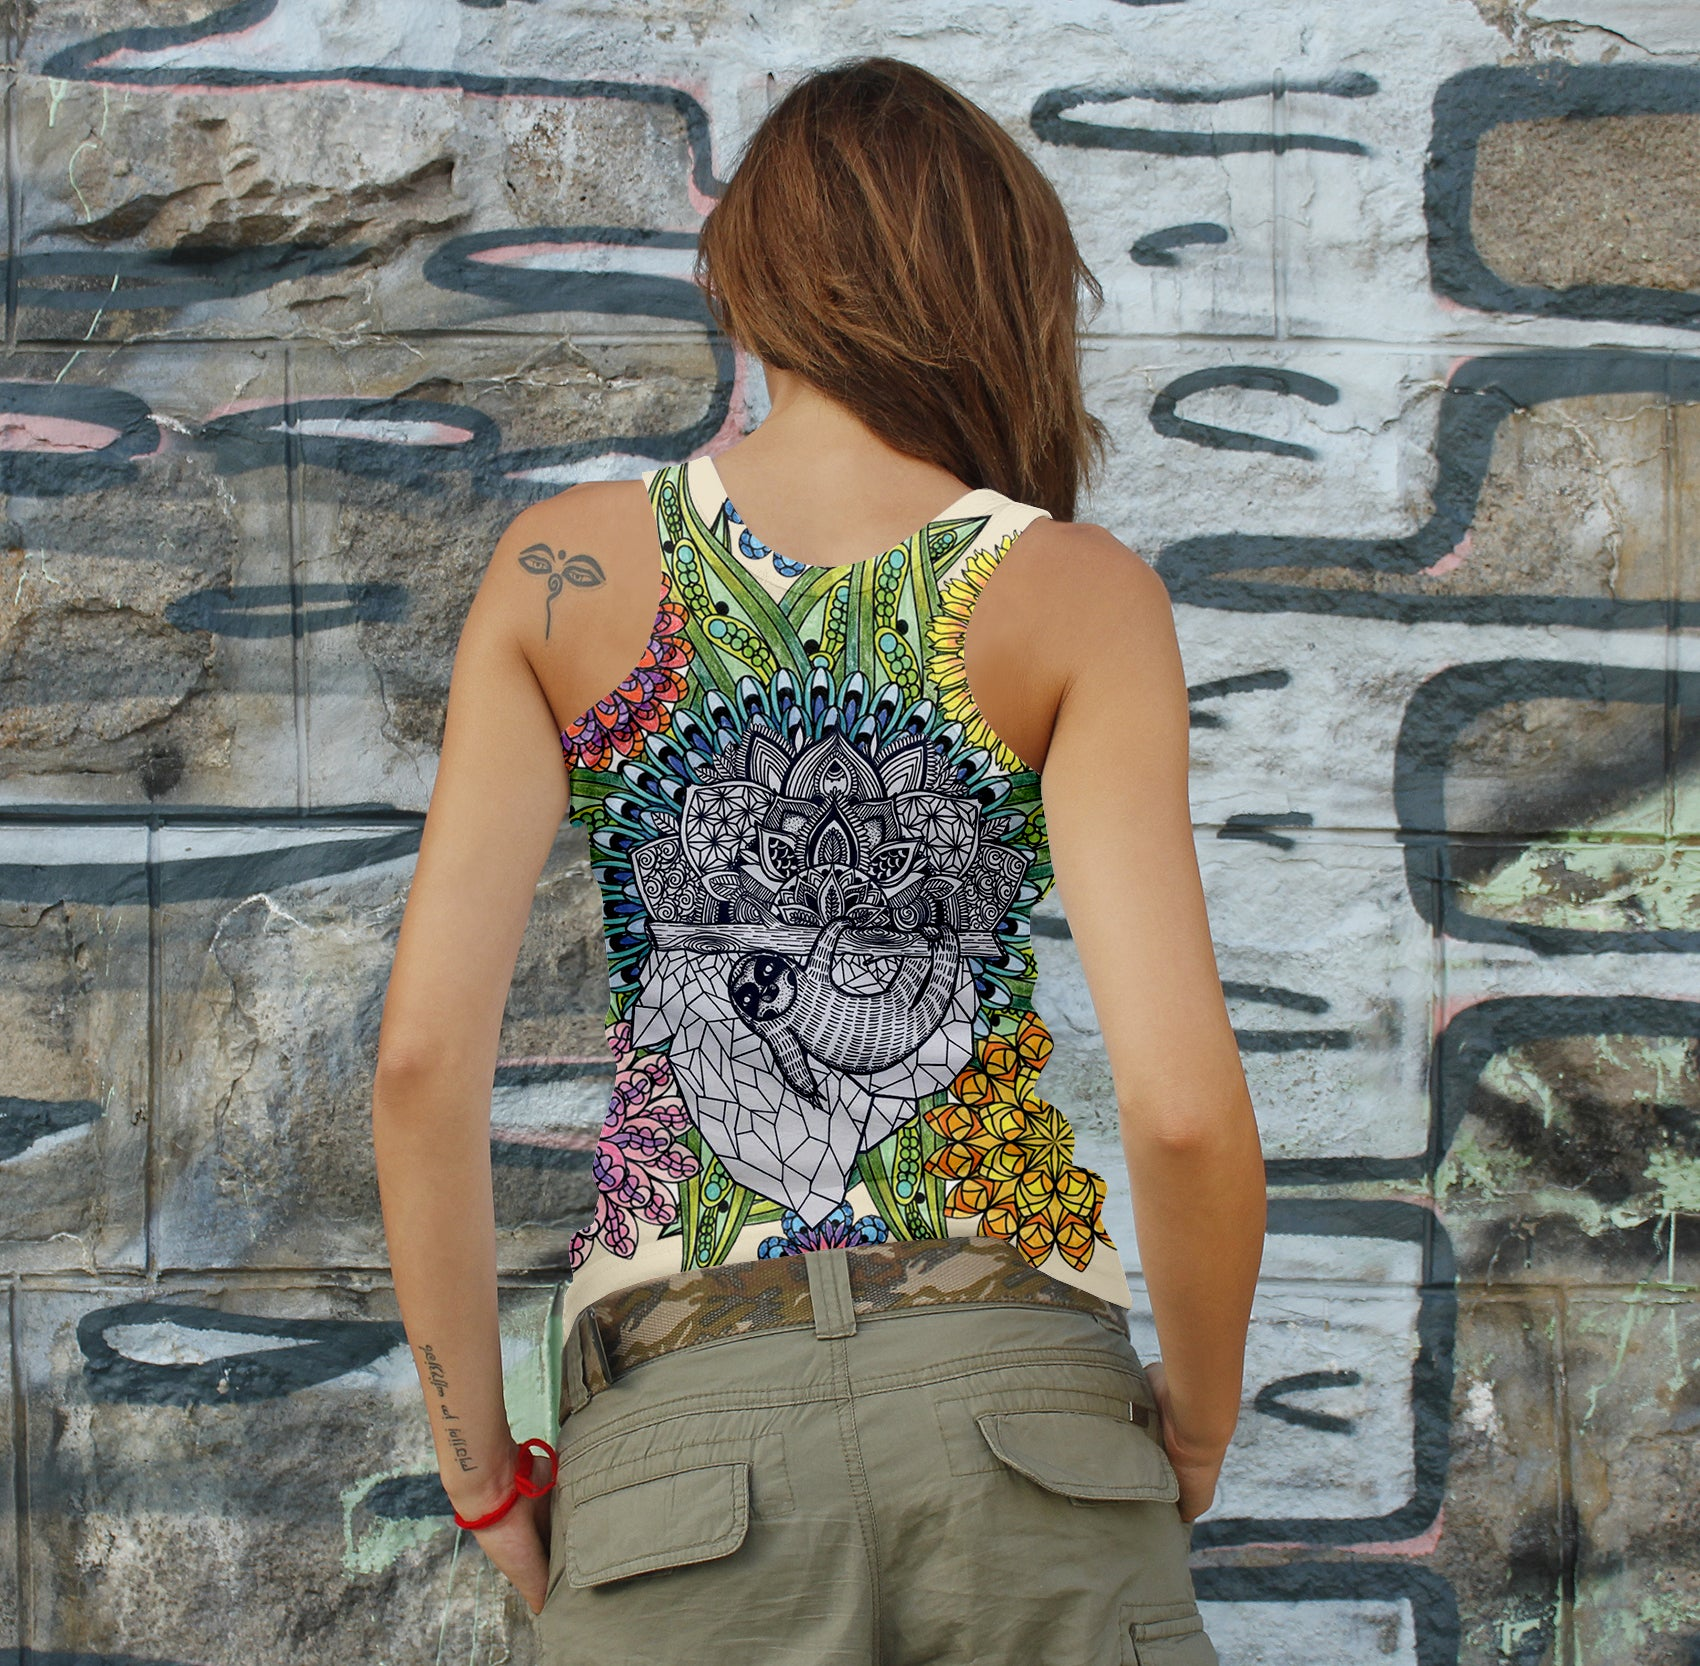 Mandala Sloth 3D Woman Tank 04